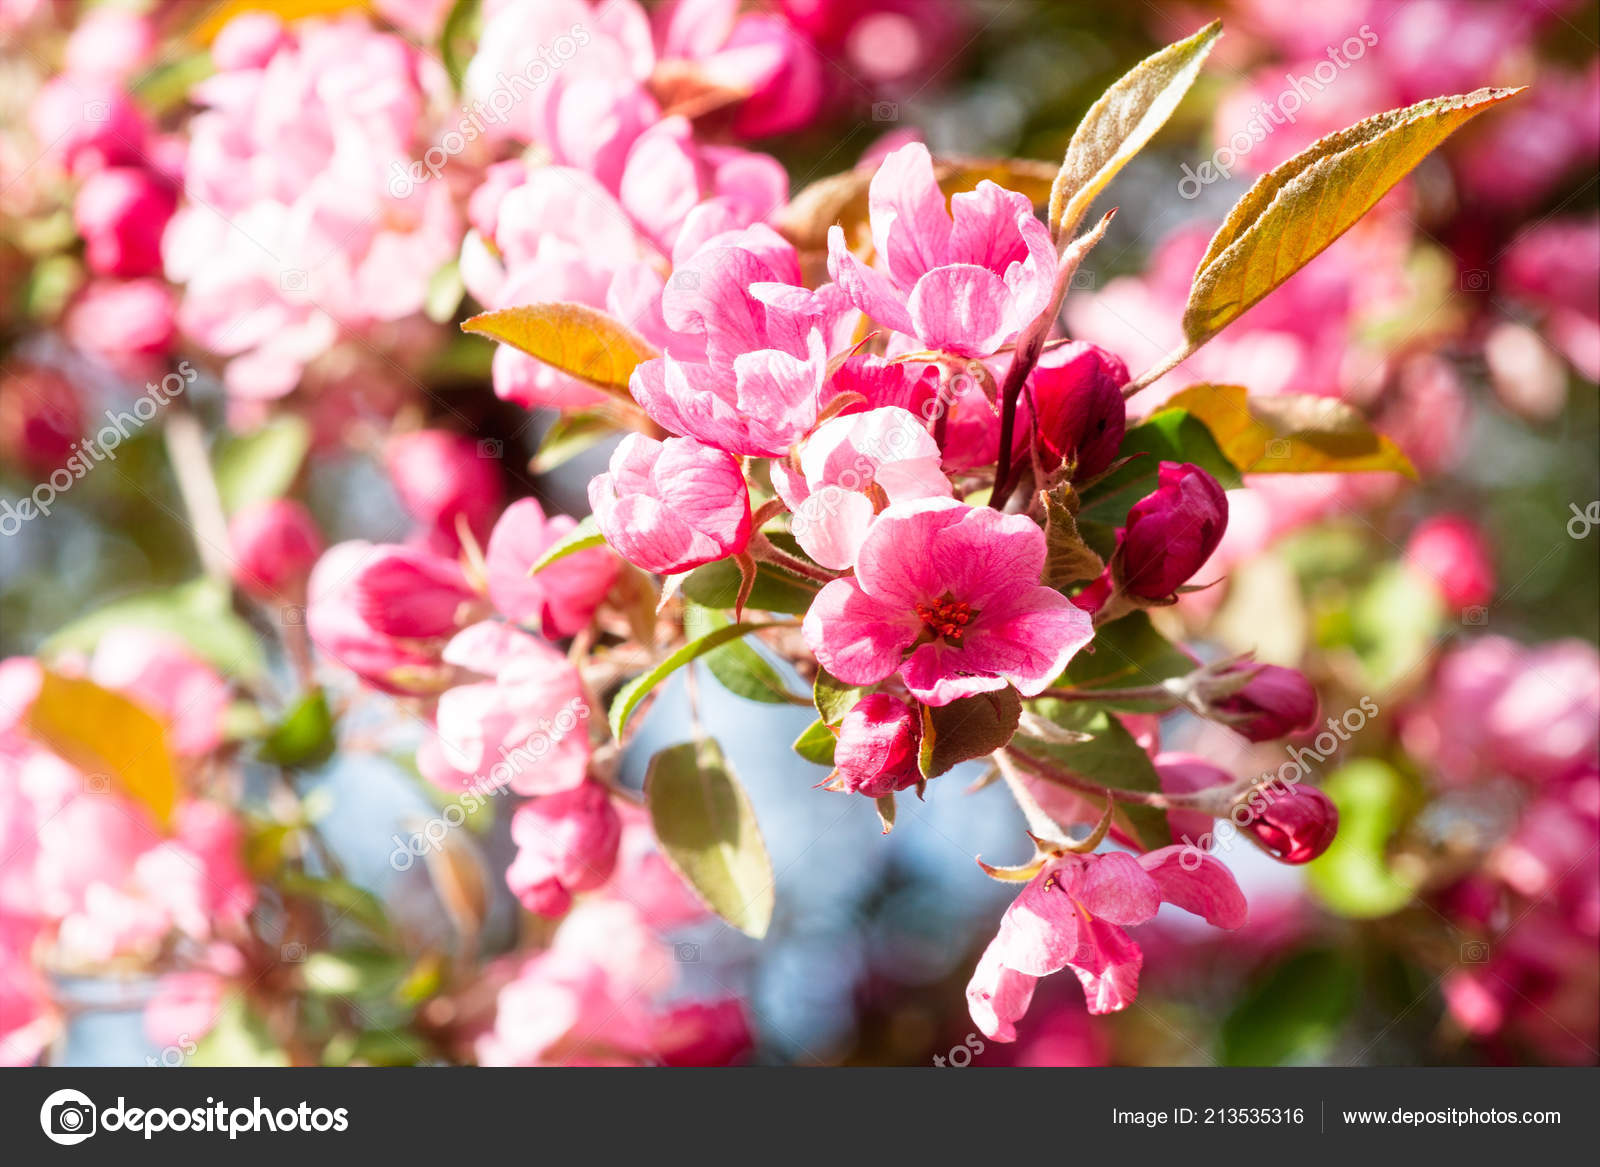 Closeup View Crabapple Tree Bloom Clusters Bunches Pink